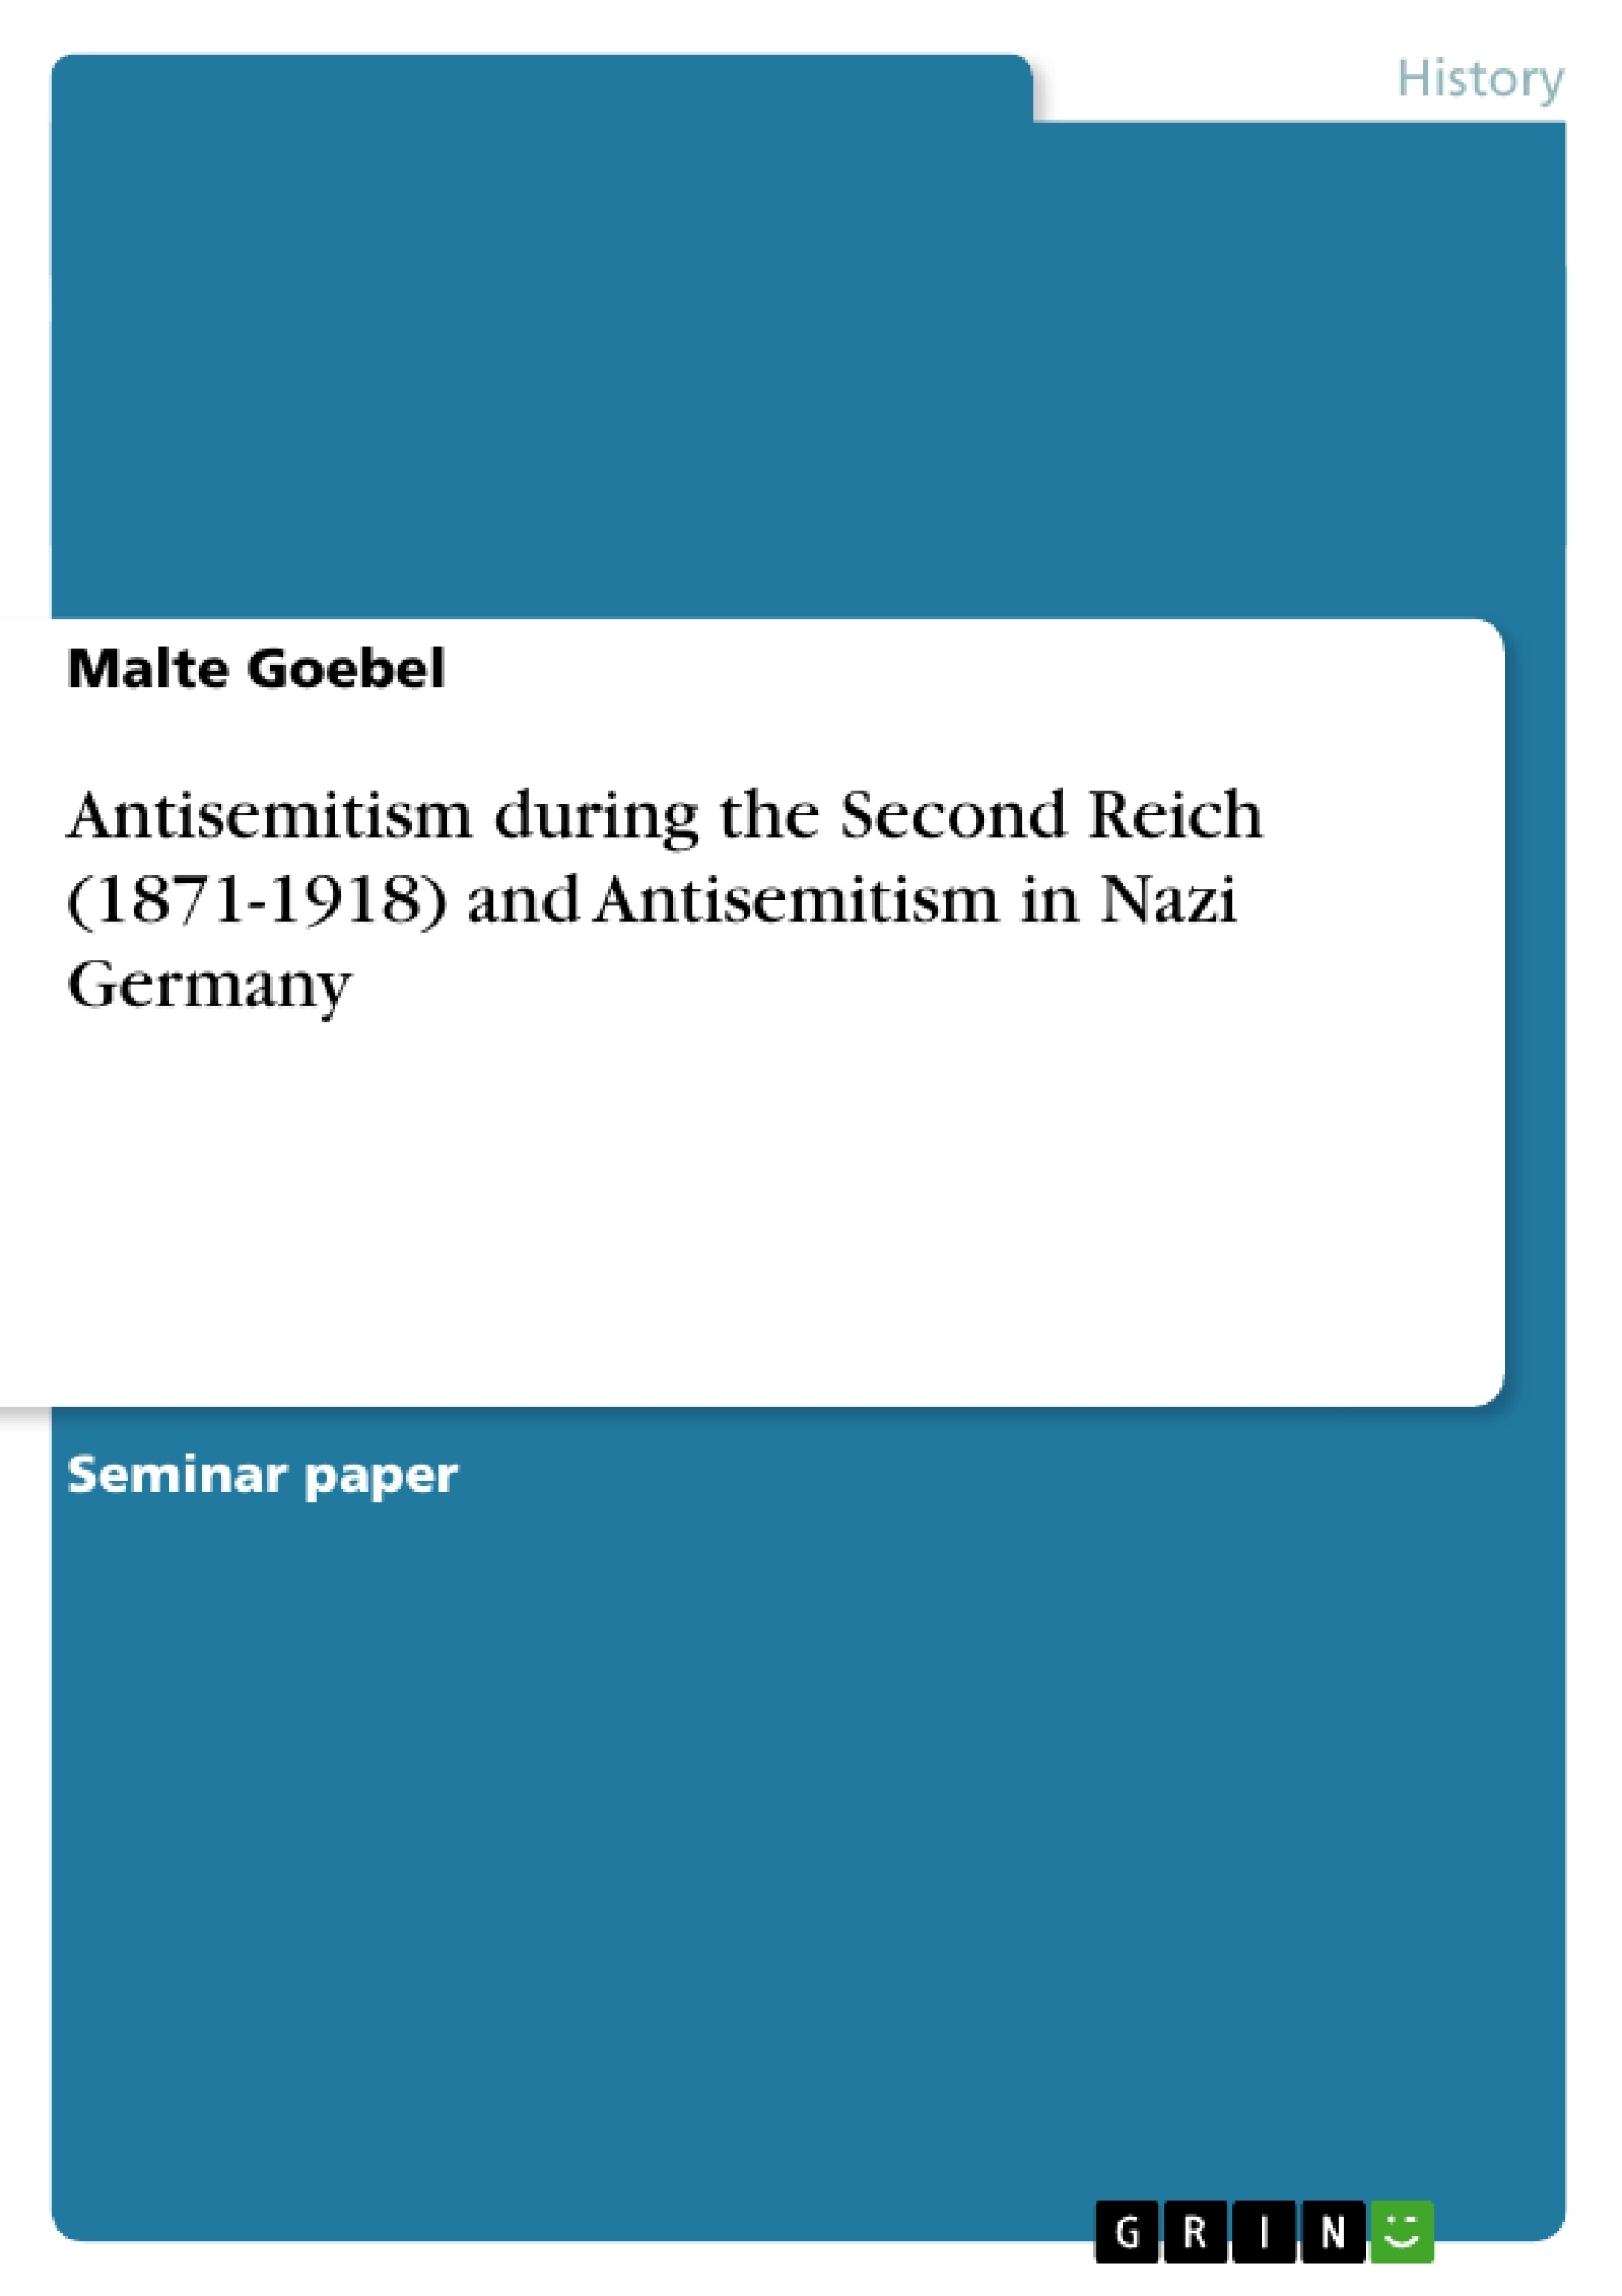 Title: Antisemitism during the Second Reich (1871-1918) and Antisemitism in Nazi Germany